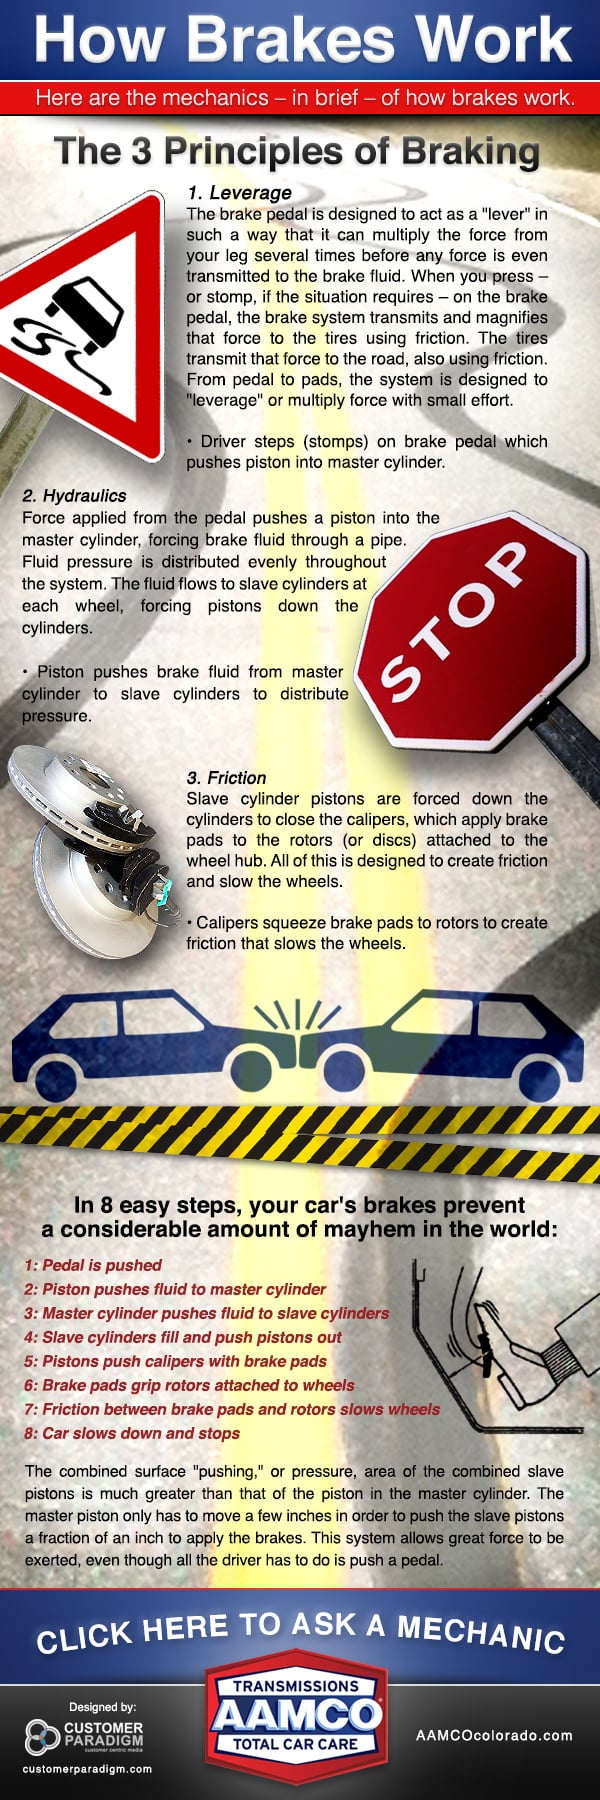 Infographic - How Brakes Work